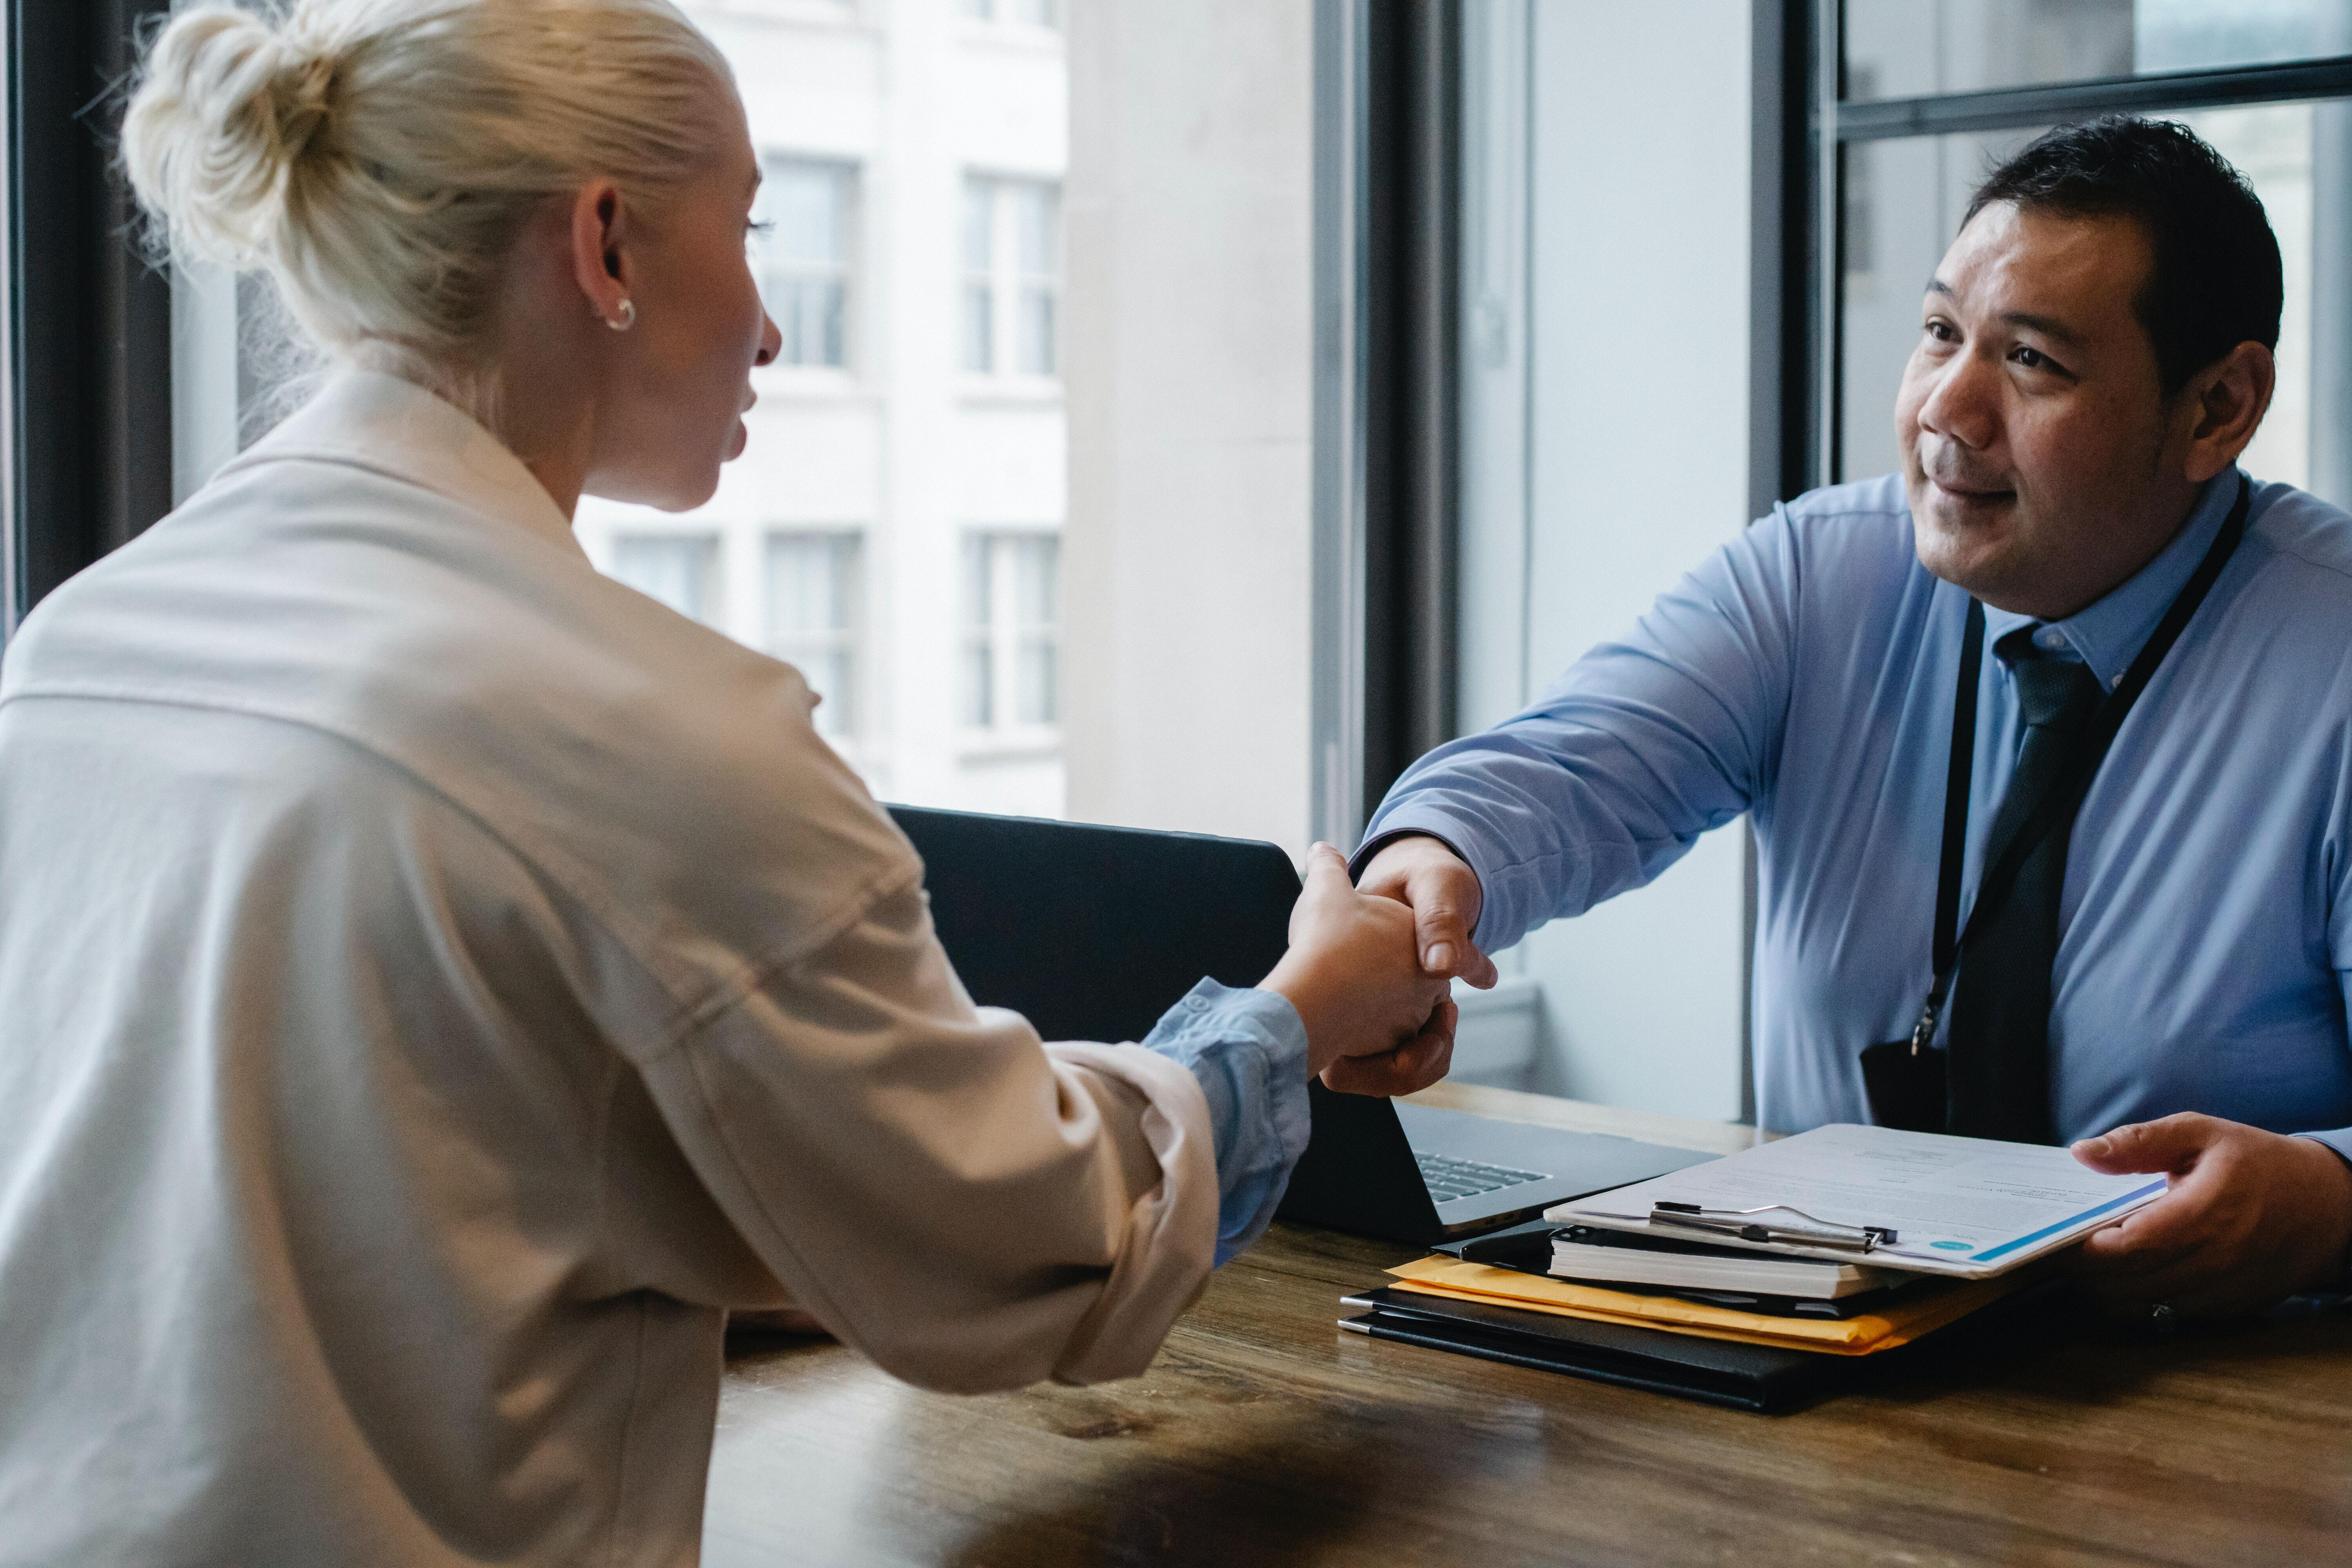 A person wearing a blue button-down and a person wearing a white shirt are shaking hands over a table.